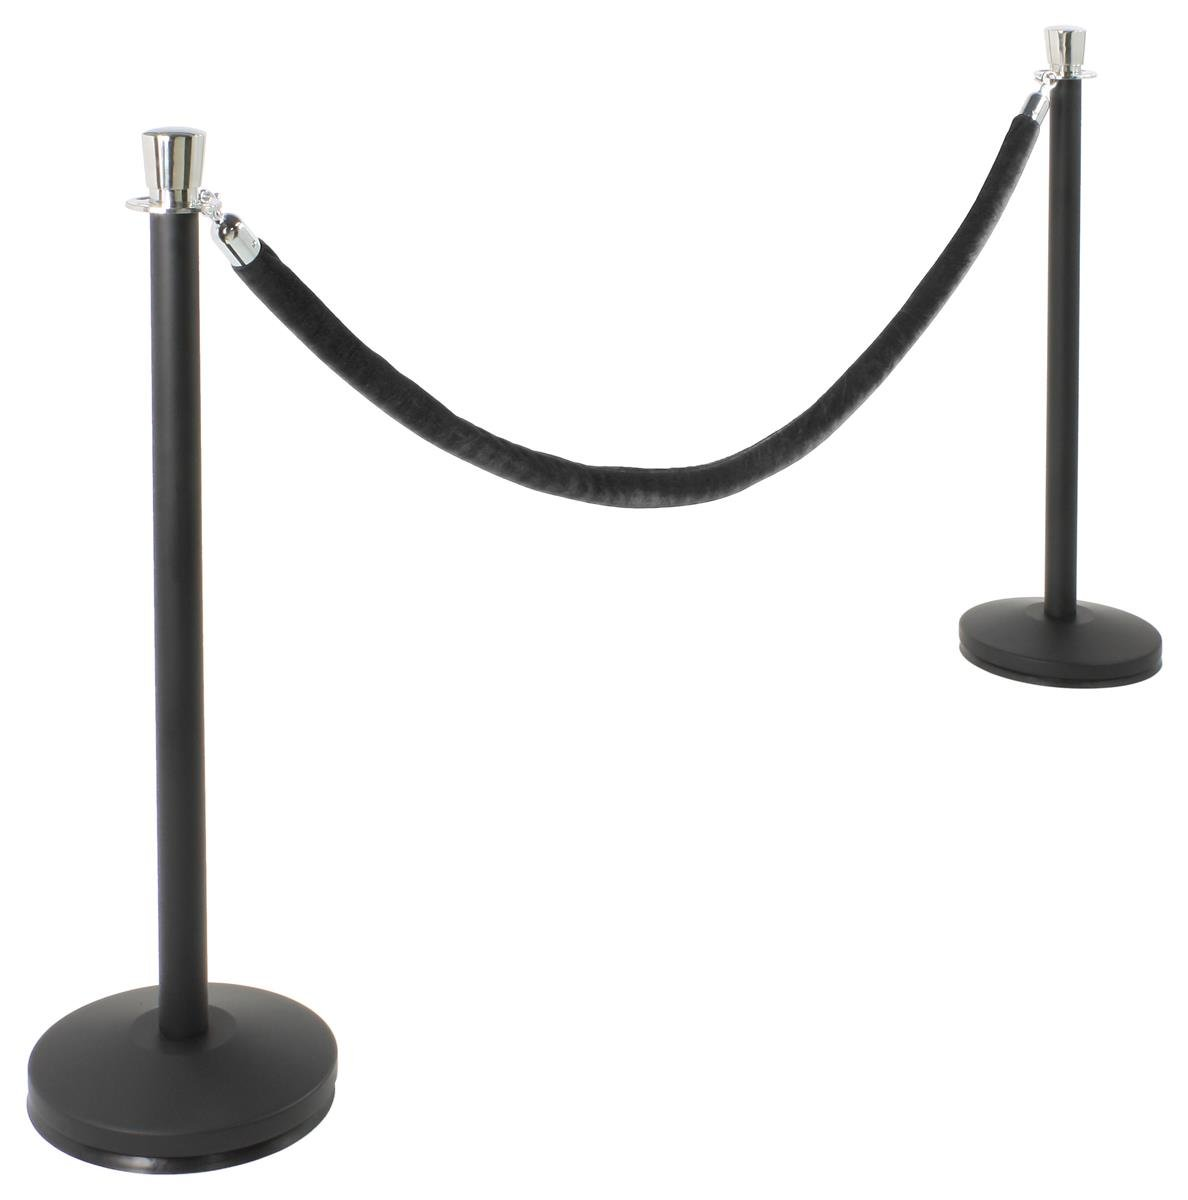 Set of 2 Matte Black Stanchion Posts with 6.5' Black Velvet Rope, Chrome Finish Tulip Tops by QueuePole